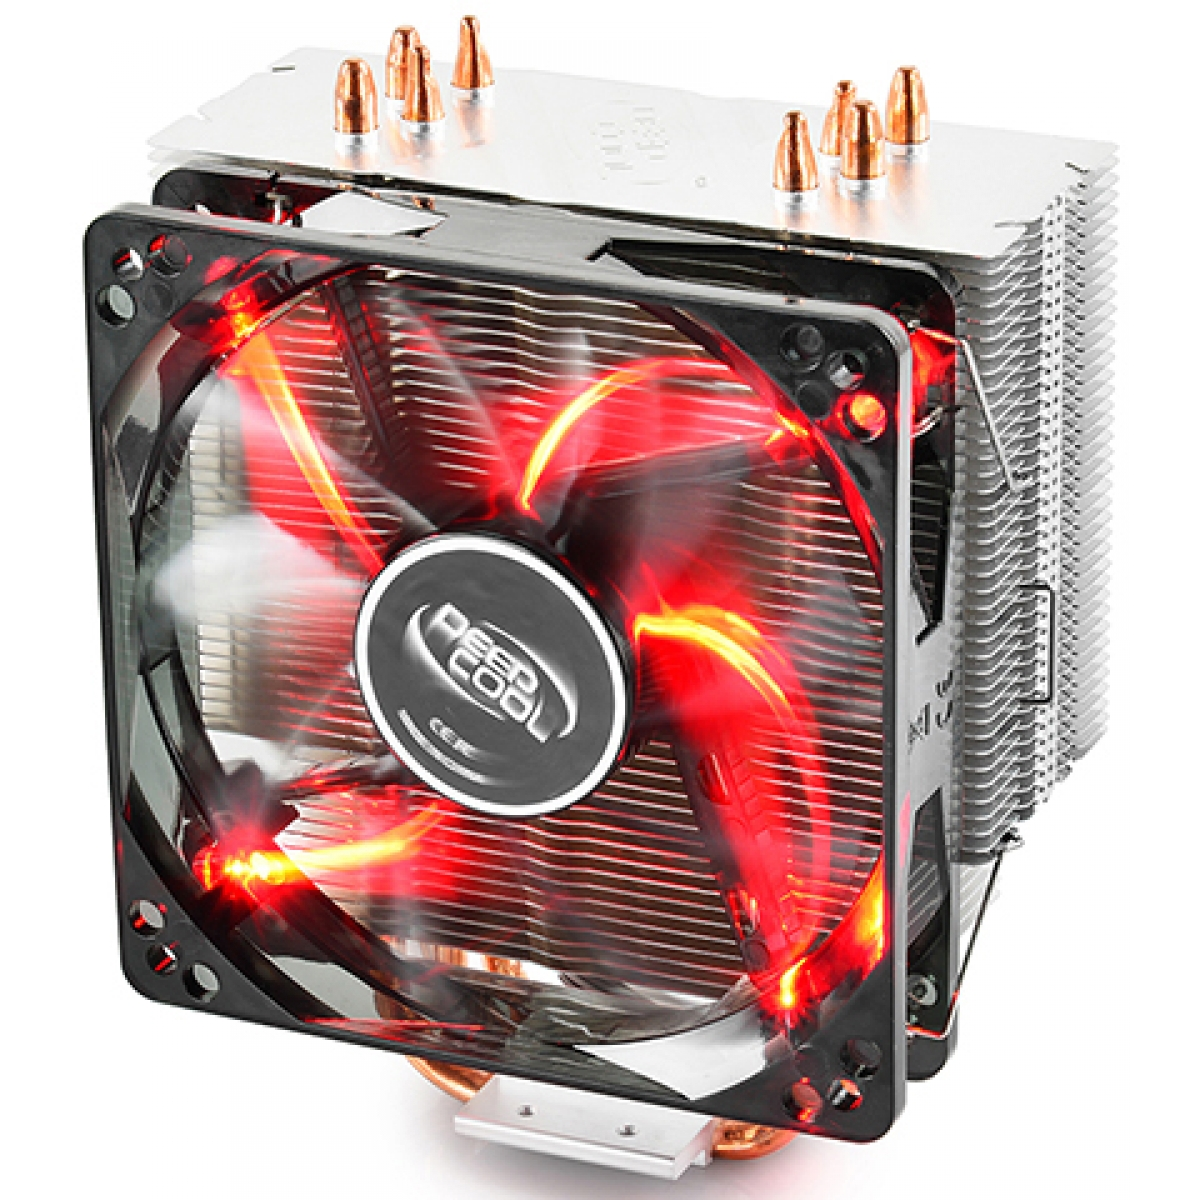 Cooler para Processador DeepCool Gammaxx 400, LED Red 120mm, Intel-AMD, DP-MCH4-GMX400RD